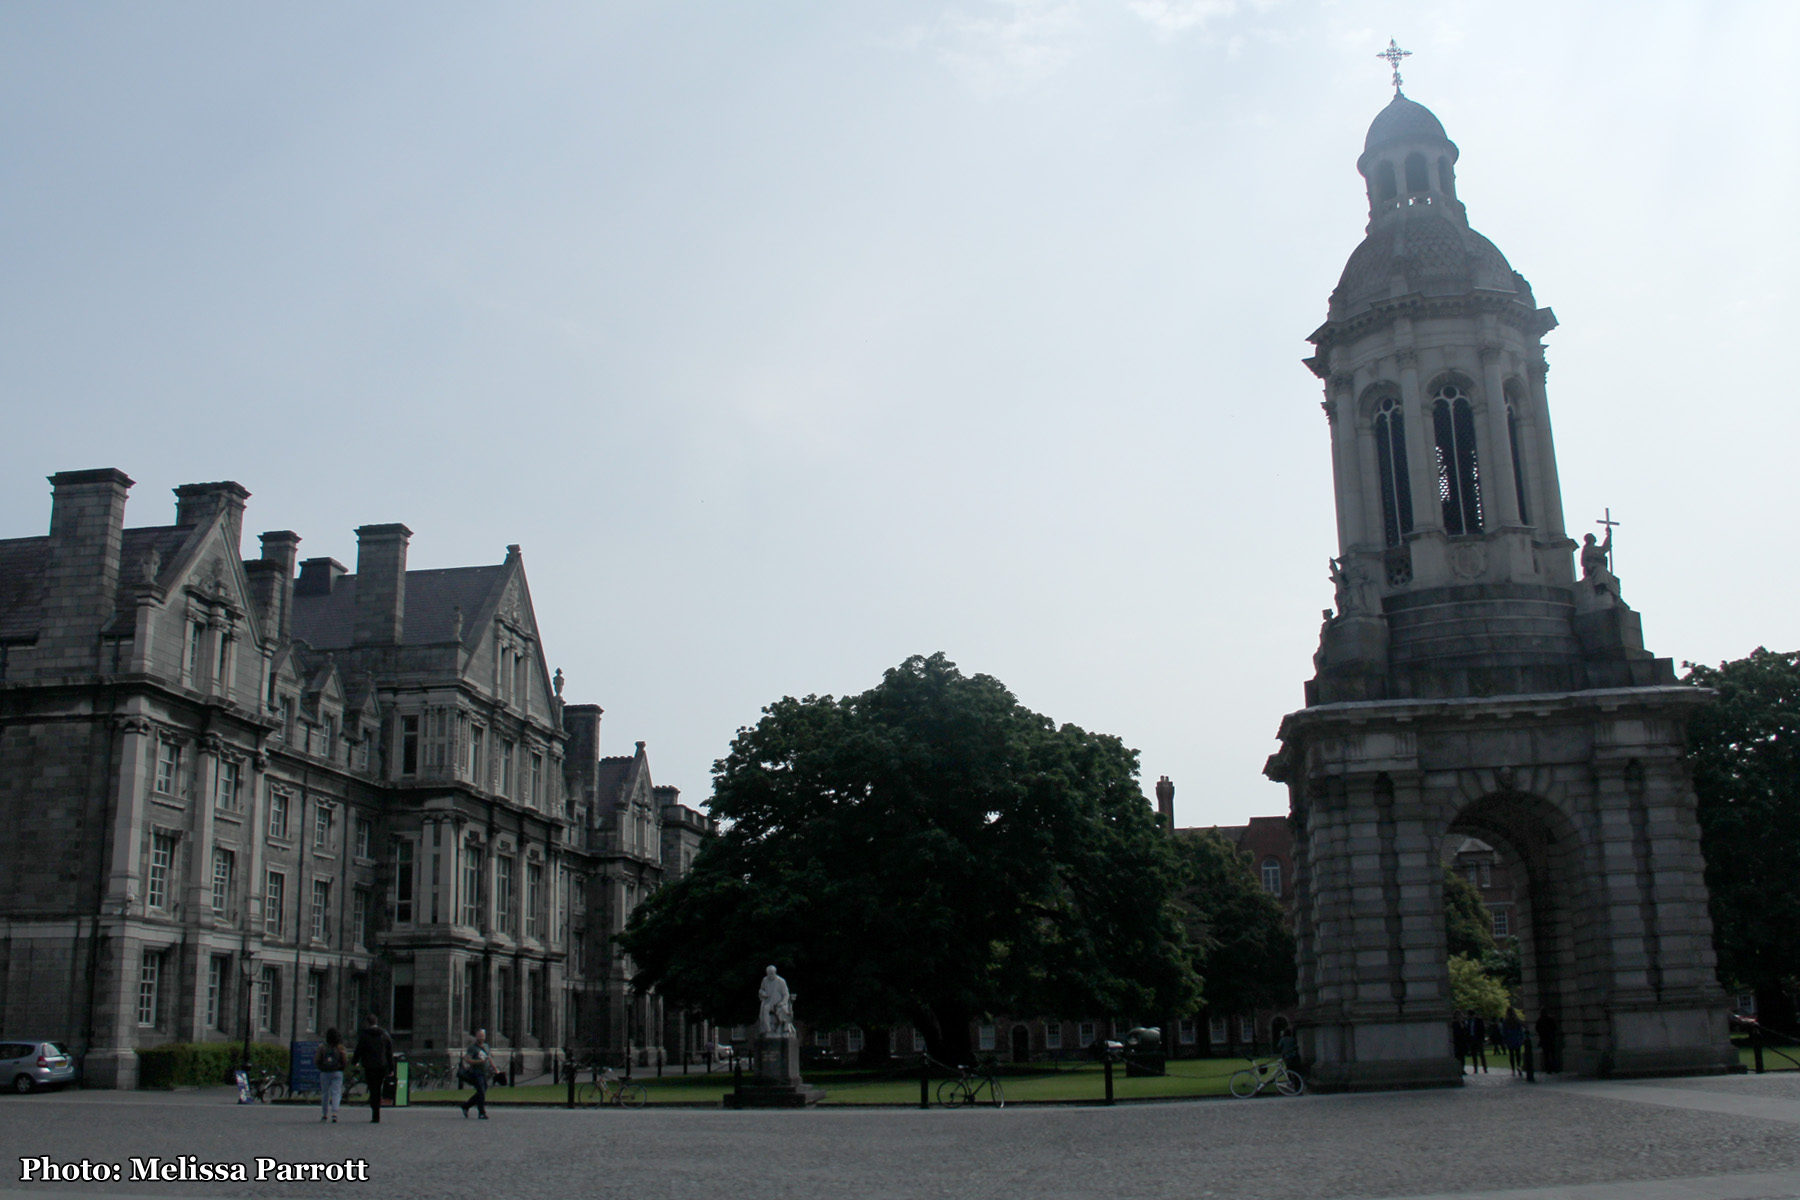 Trinity College Courtyard and Campanile